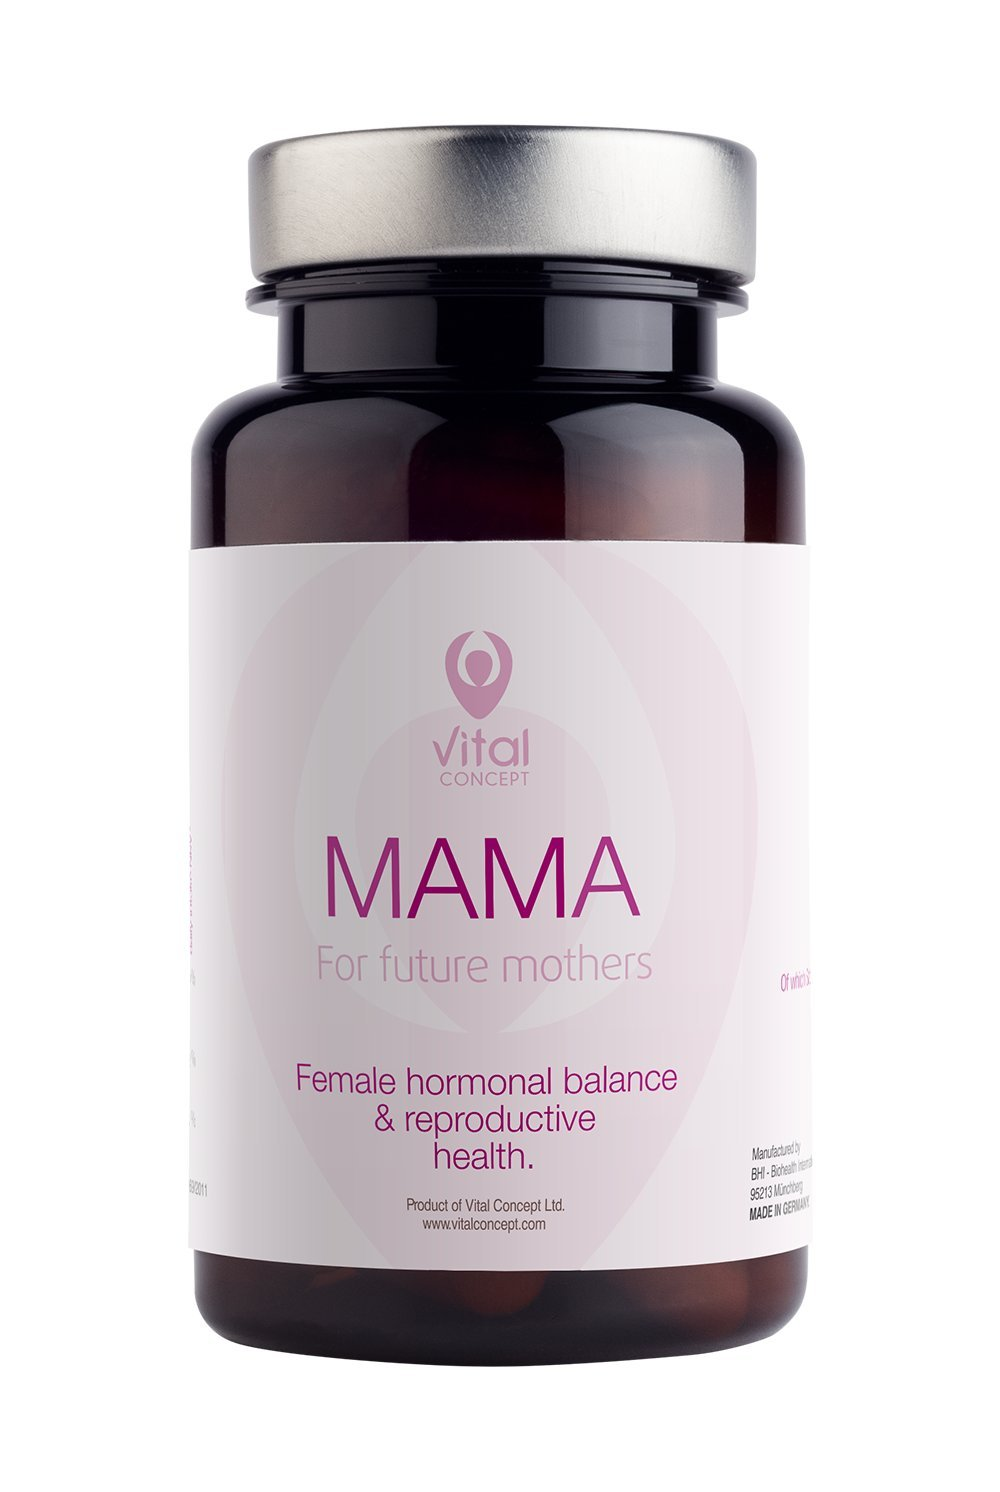 Vital Concept Mama - for Women who Want Children. Future Mothers Fertility Aid with 400 mcg Folic Acid, Coenzyme Q10. Get Pregnant Support, Female Multi Vitamins Complex. 60 Capsules, 60 Days Supply